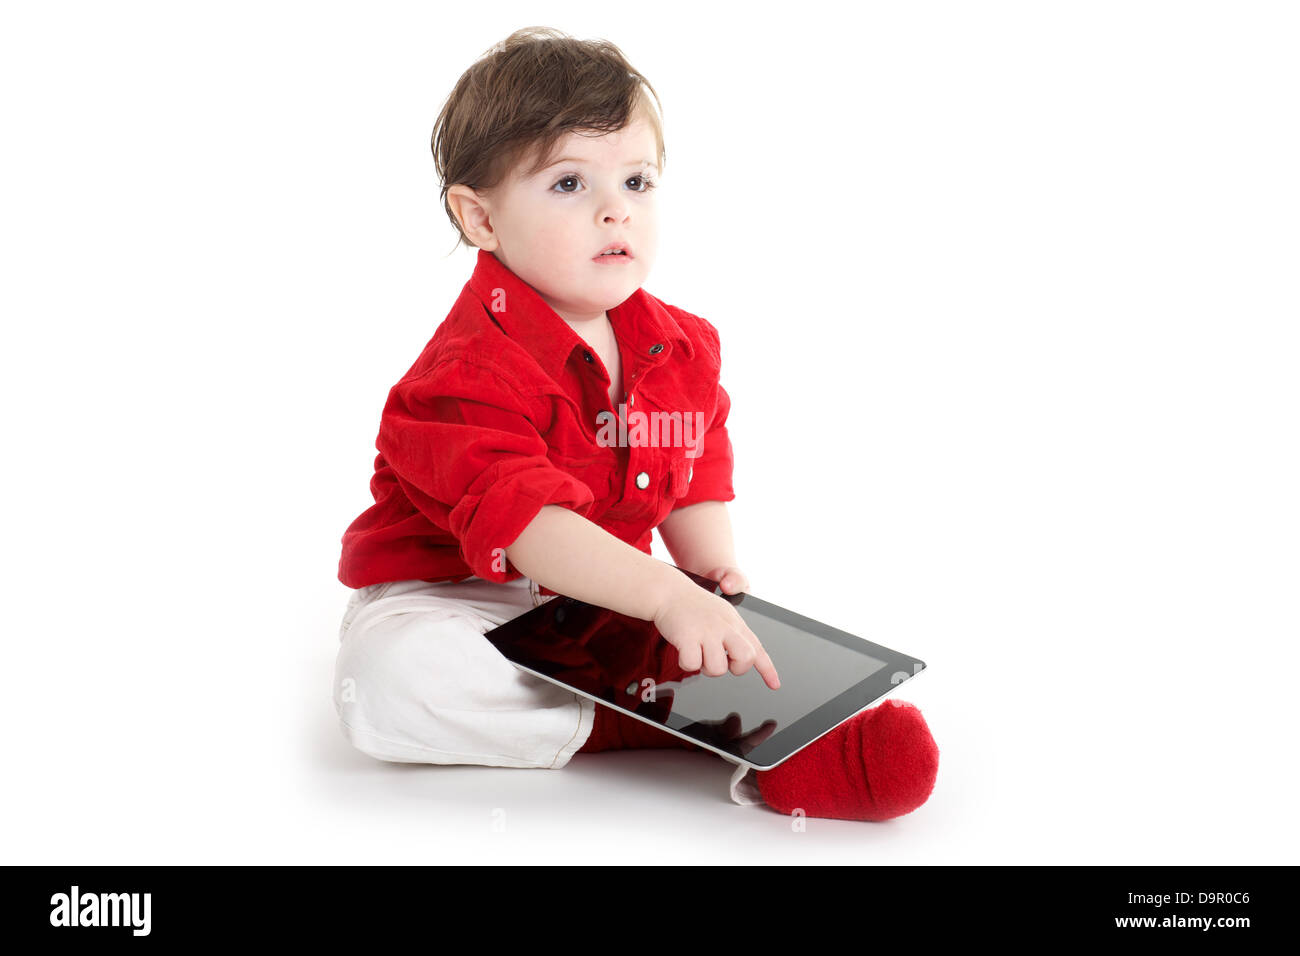 Toddler baby sitting and showing with tablet - Stock Image